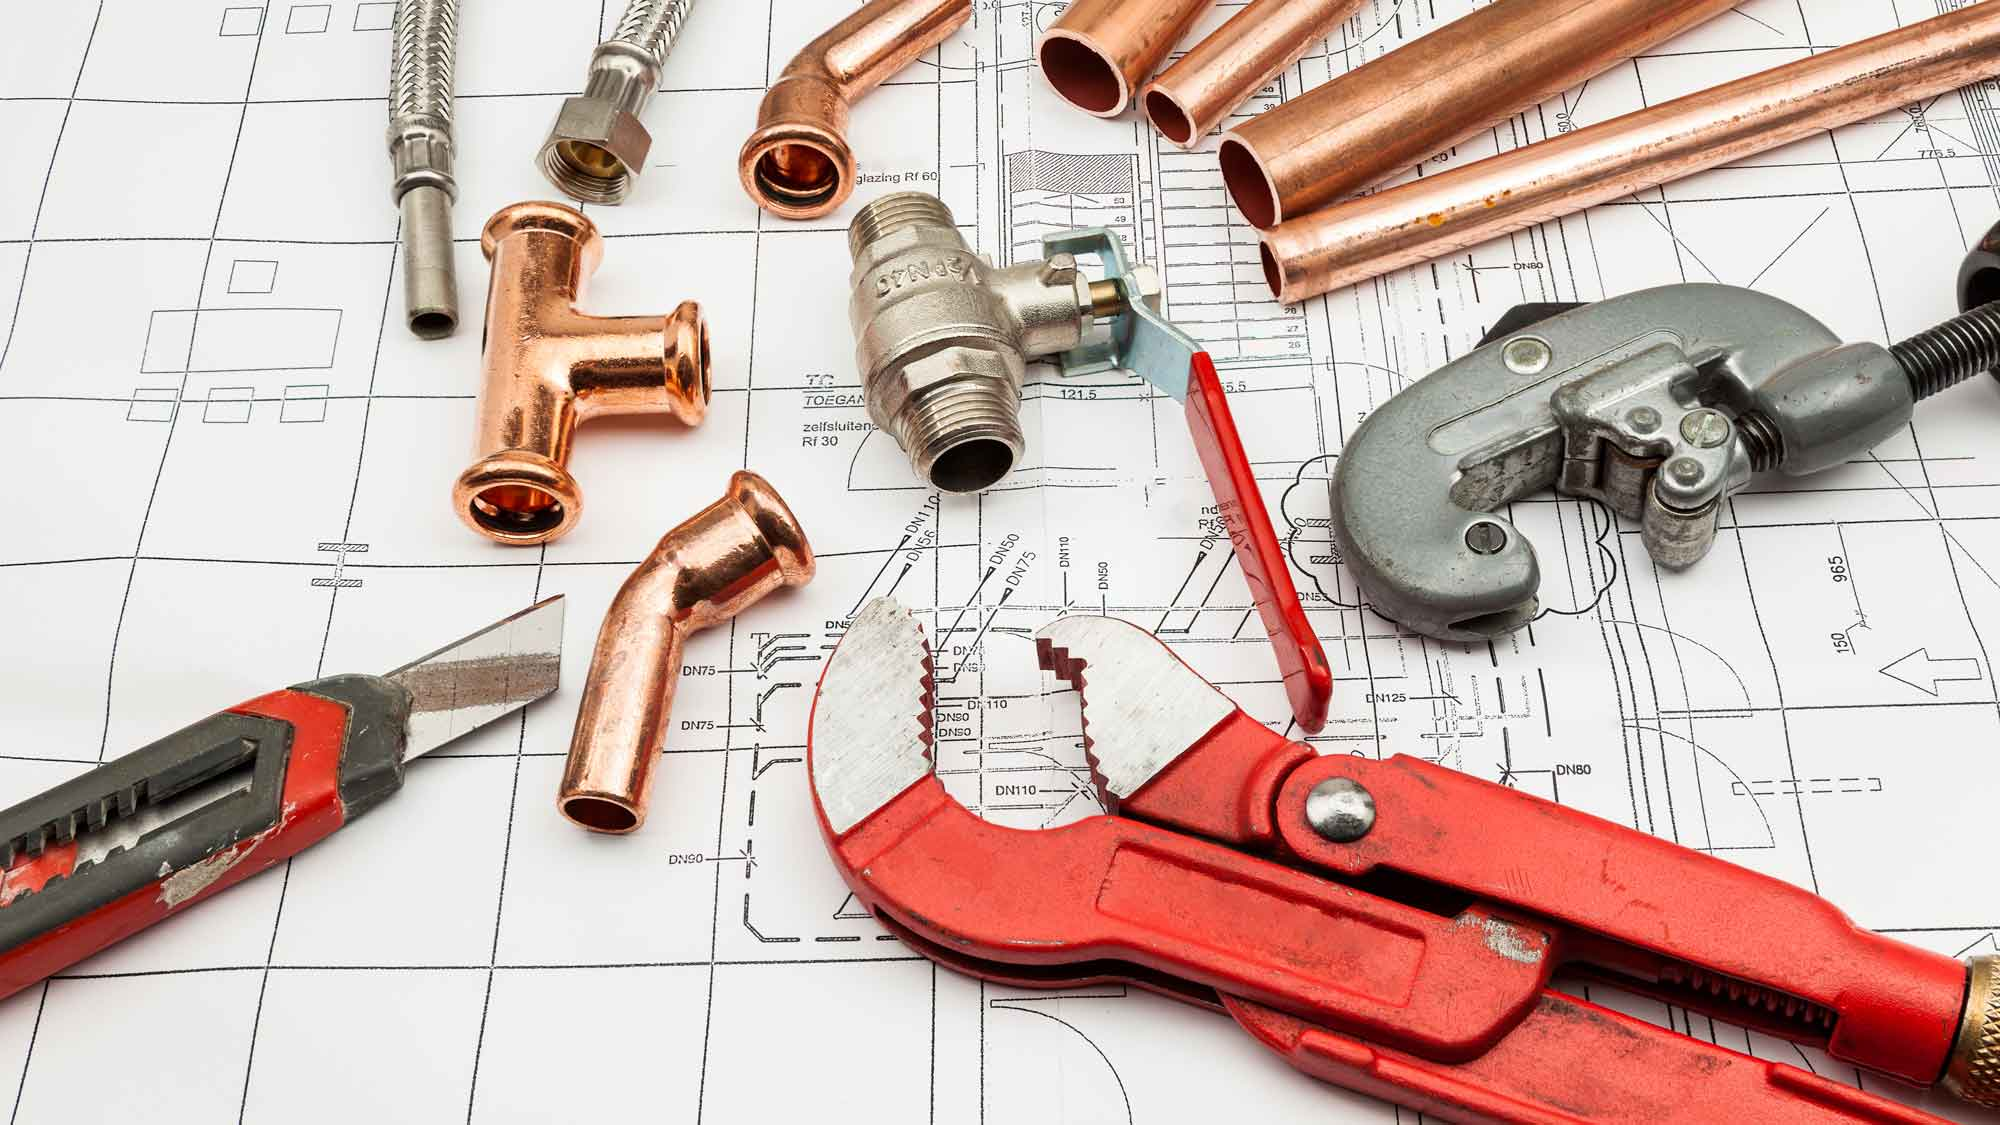 plumbing and heating services essex maintenance leigh-on-sea about